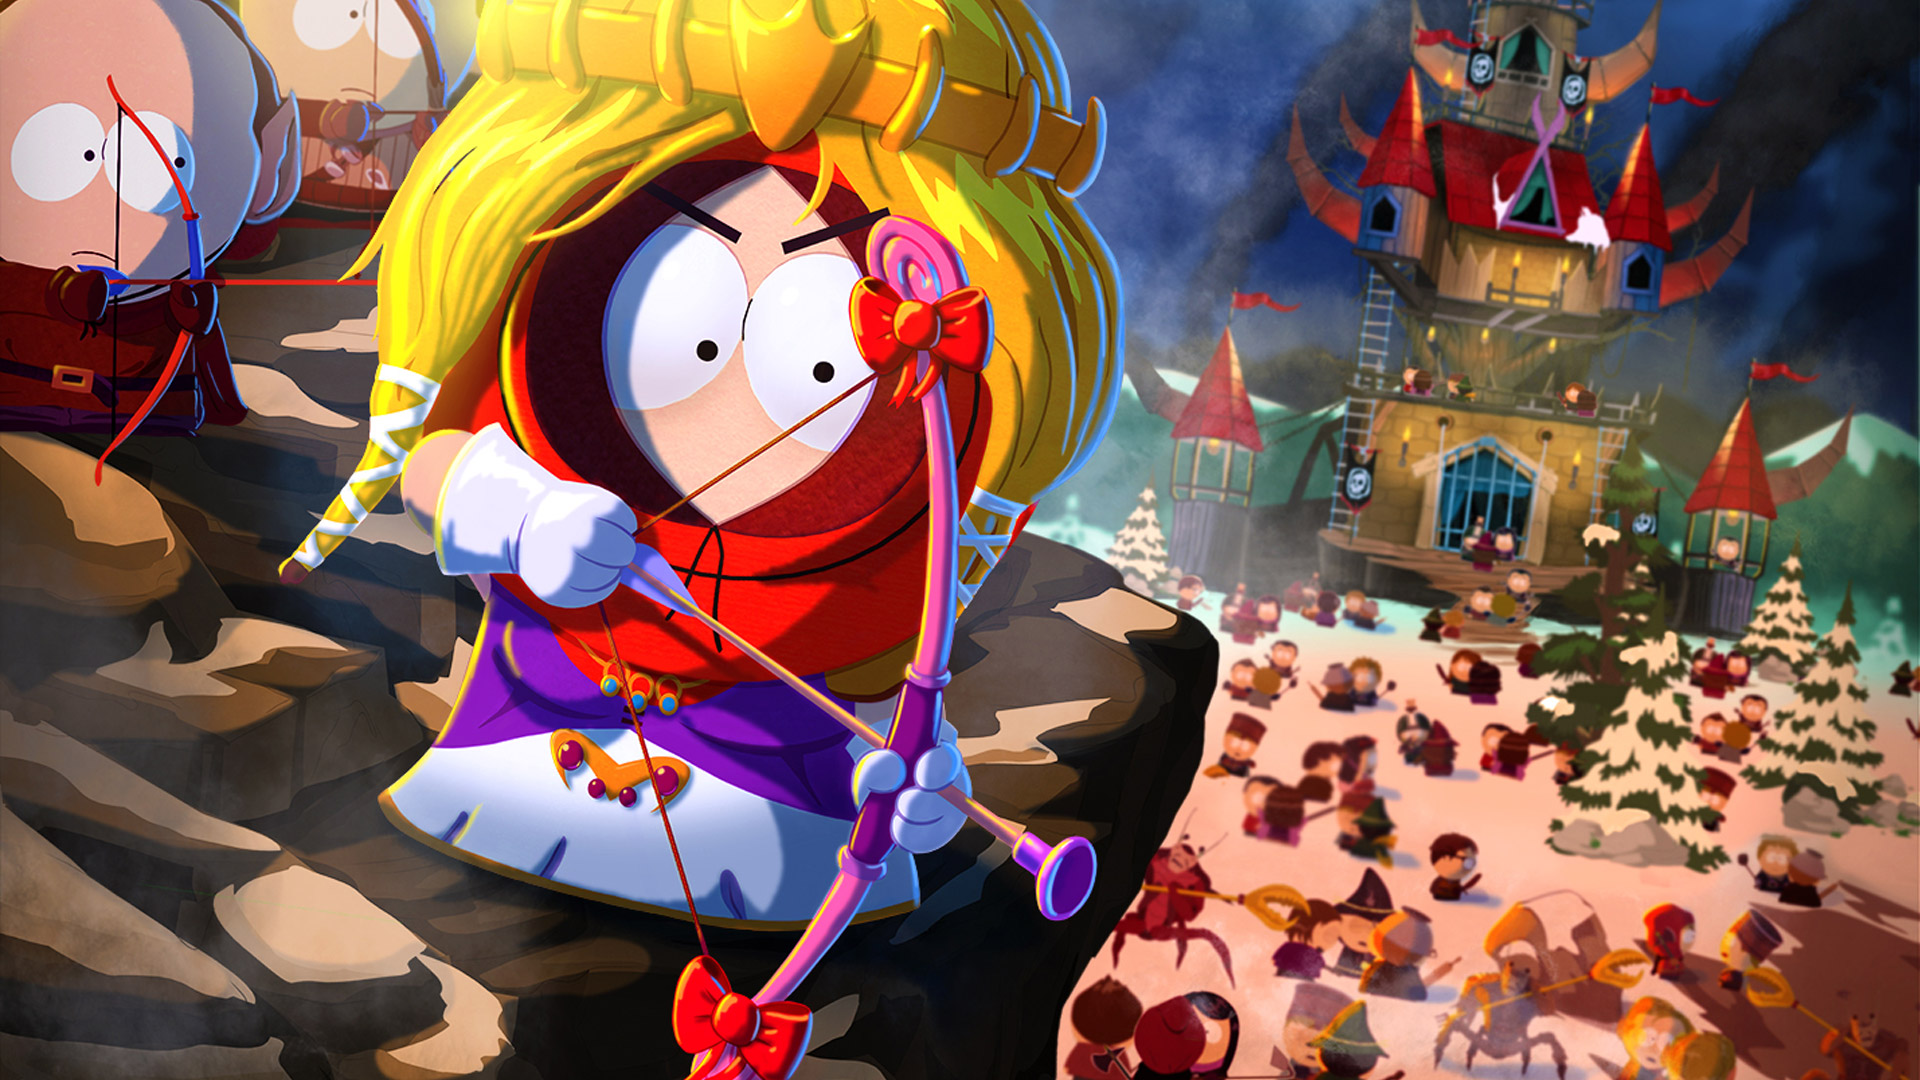 South Park The Stick of Truth wallpaper 2